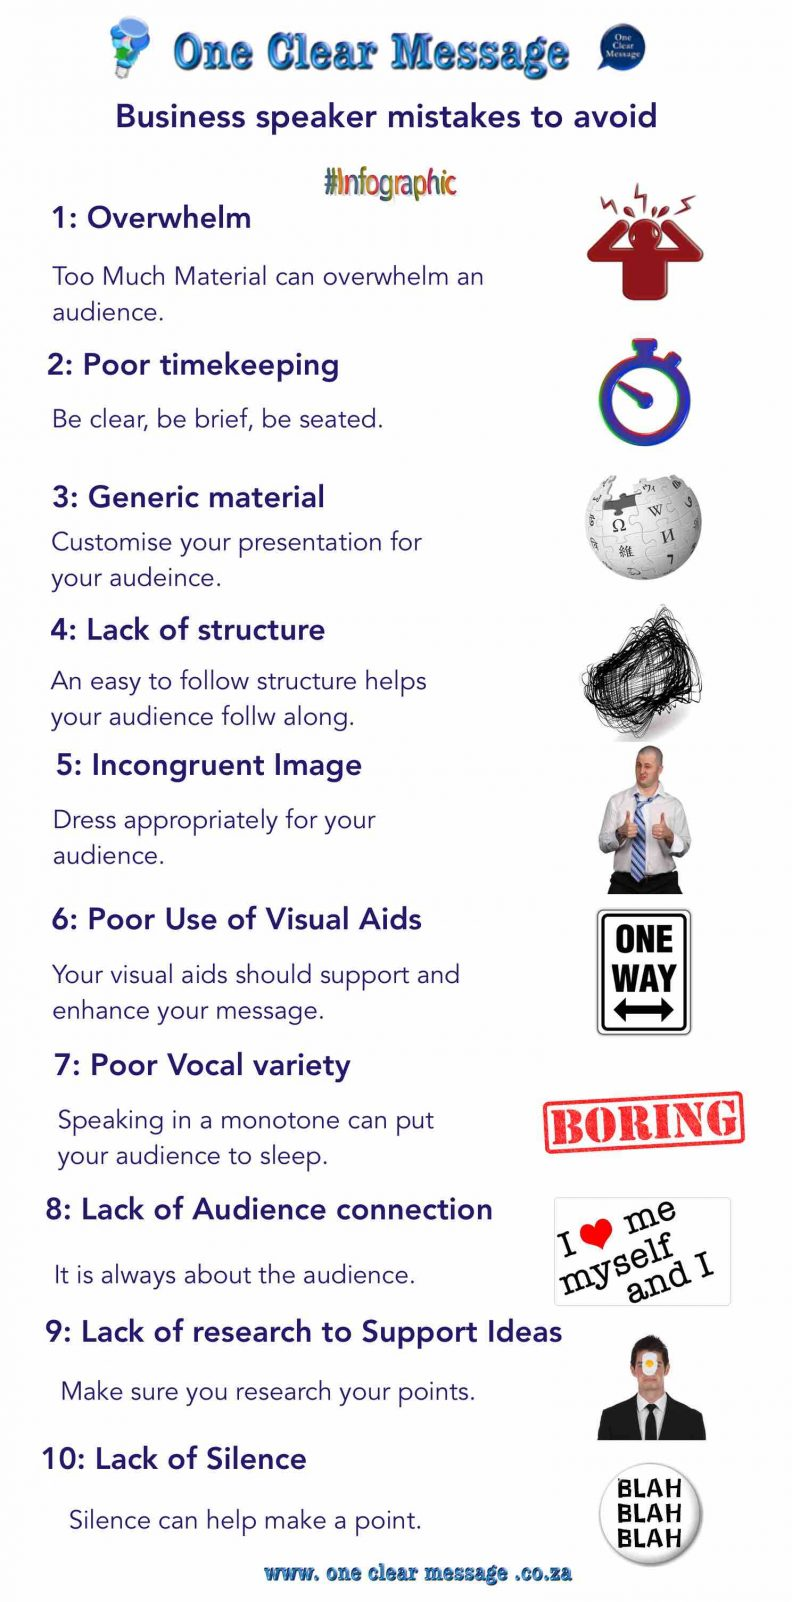 Business speaker and presentation mistakes to avoid Infographic